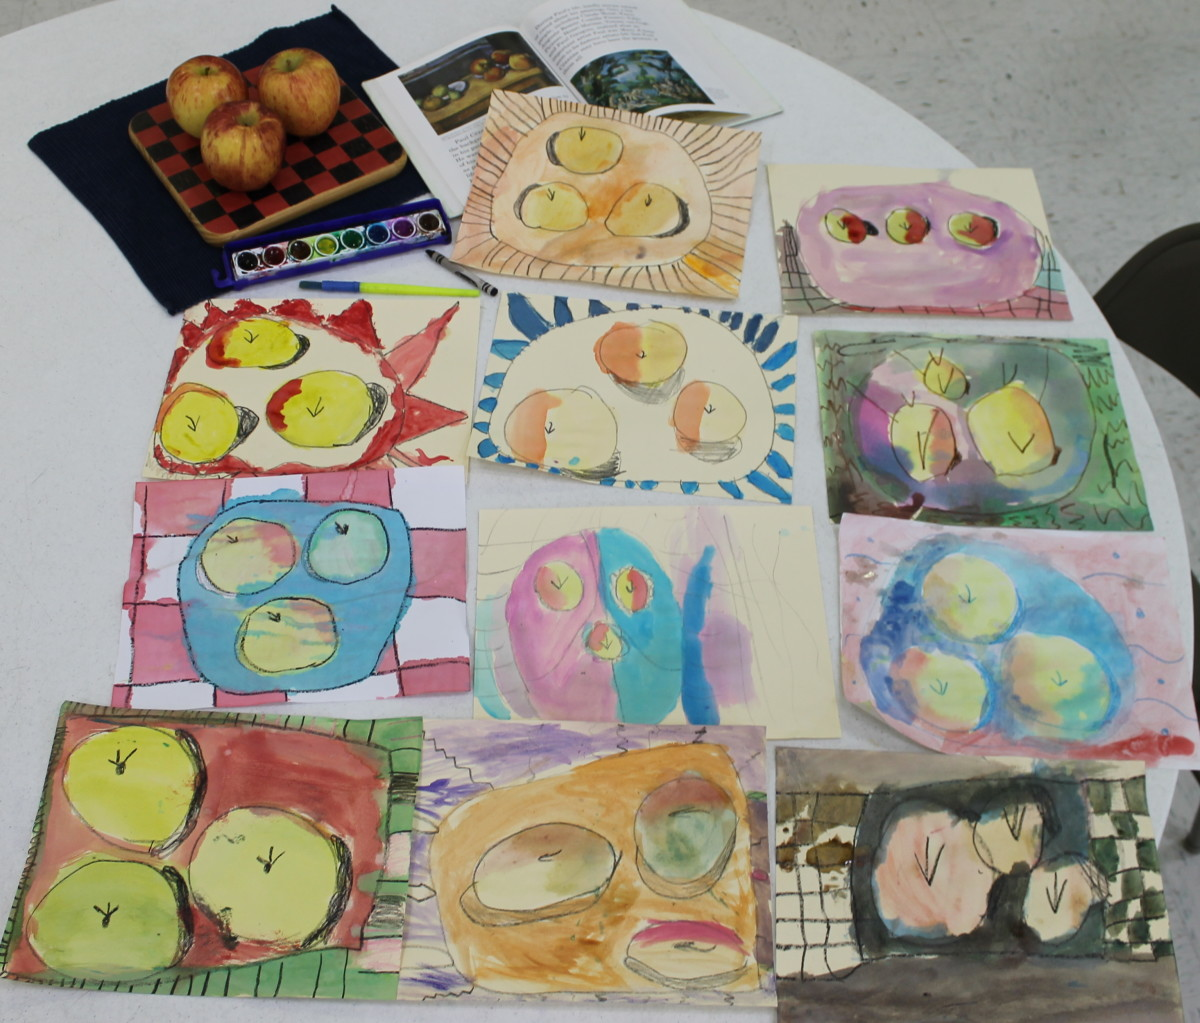 Some of the finished still ife paintings of apples inspired by Paul Cezanne